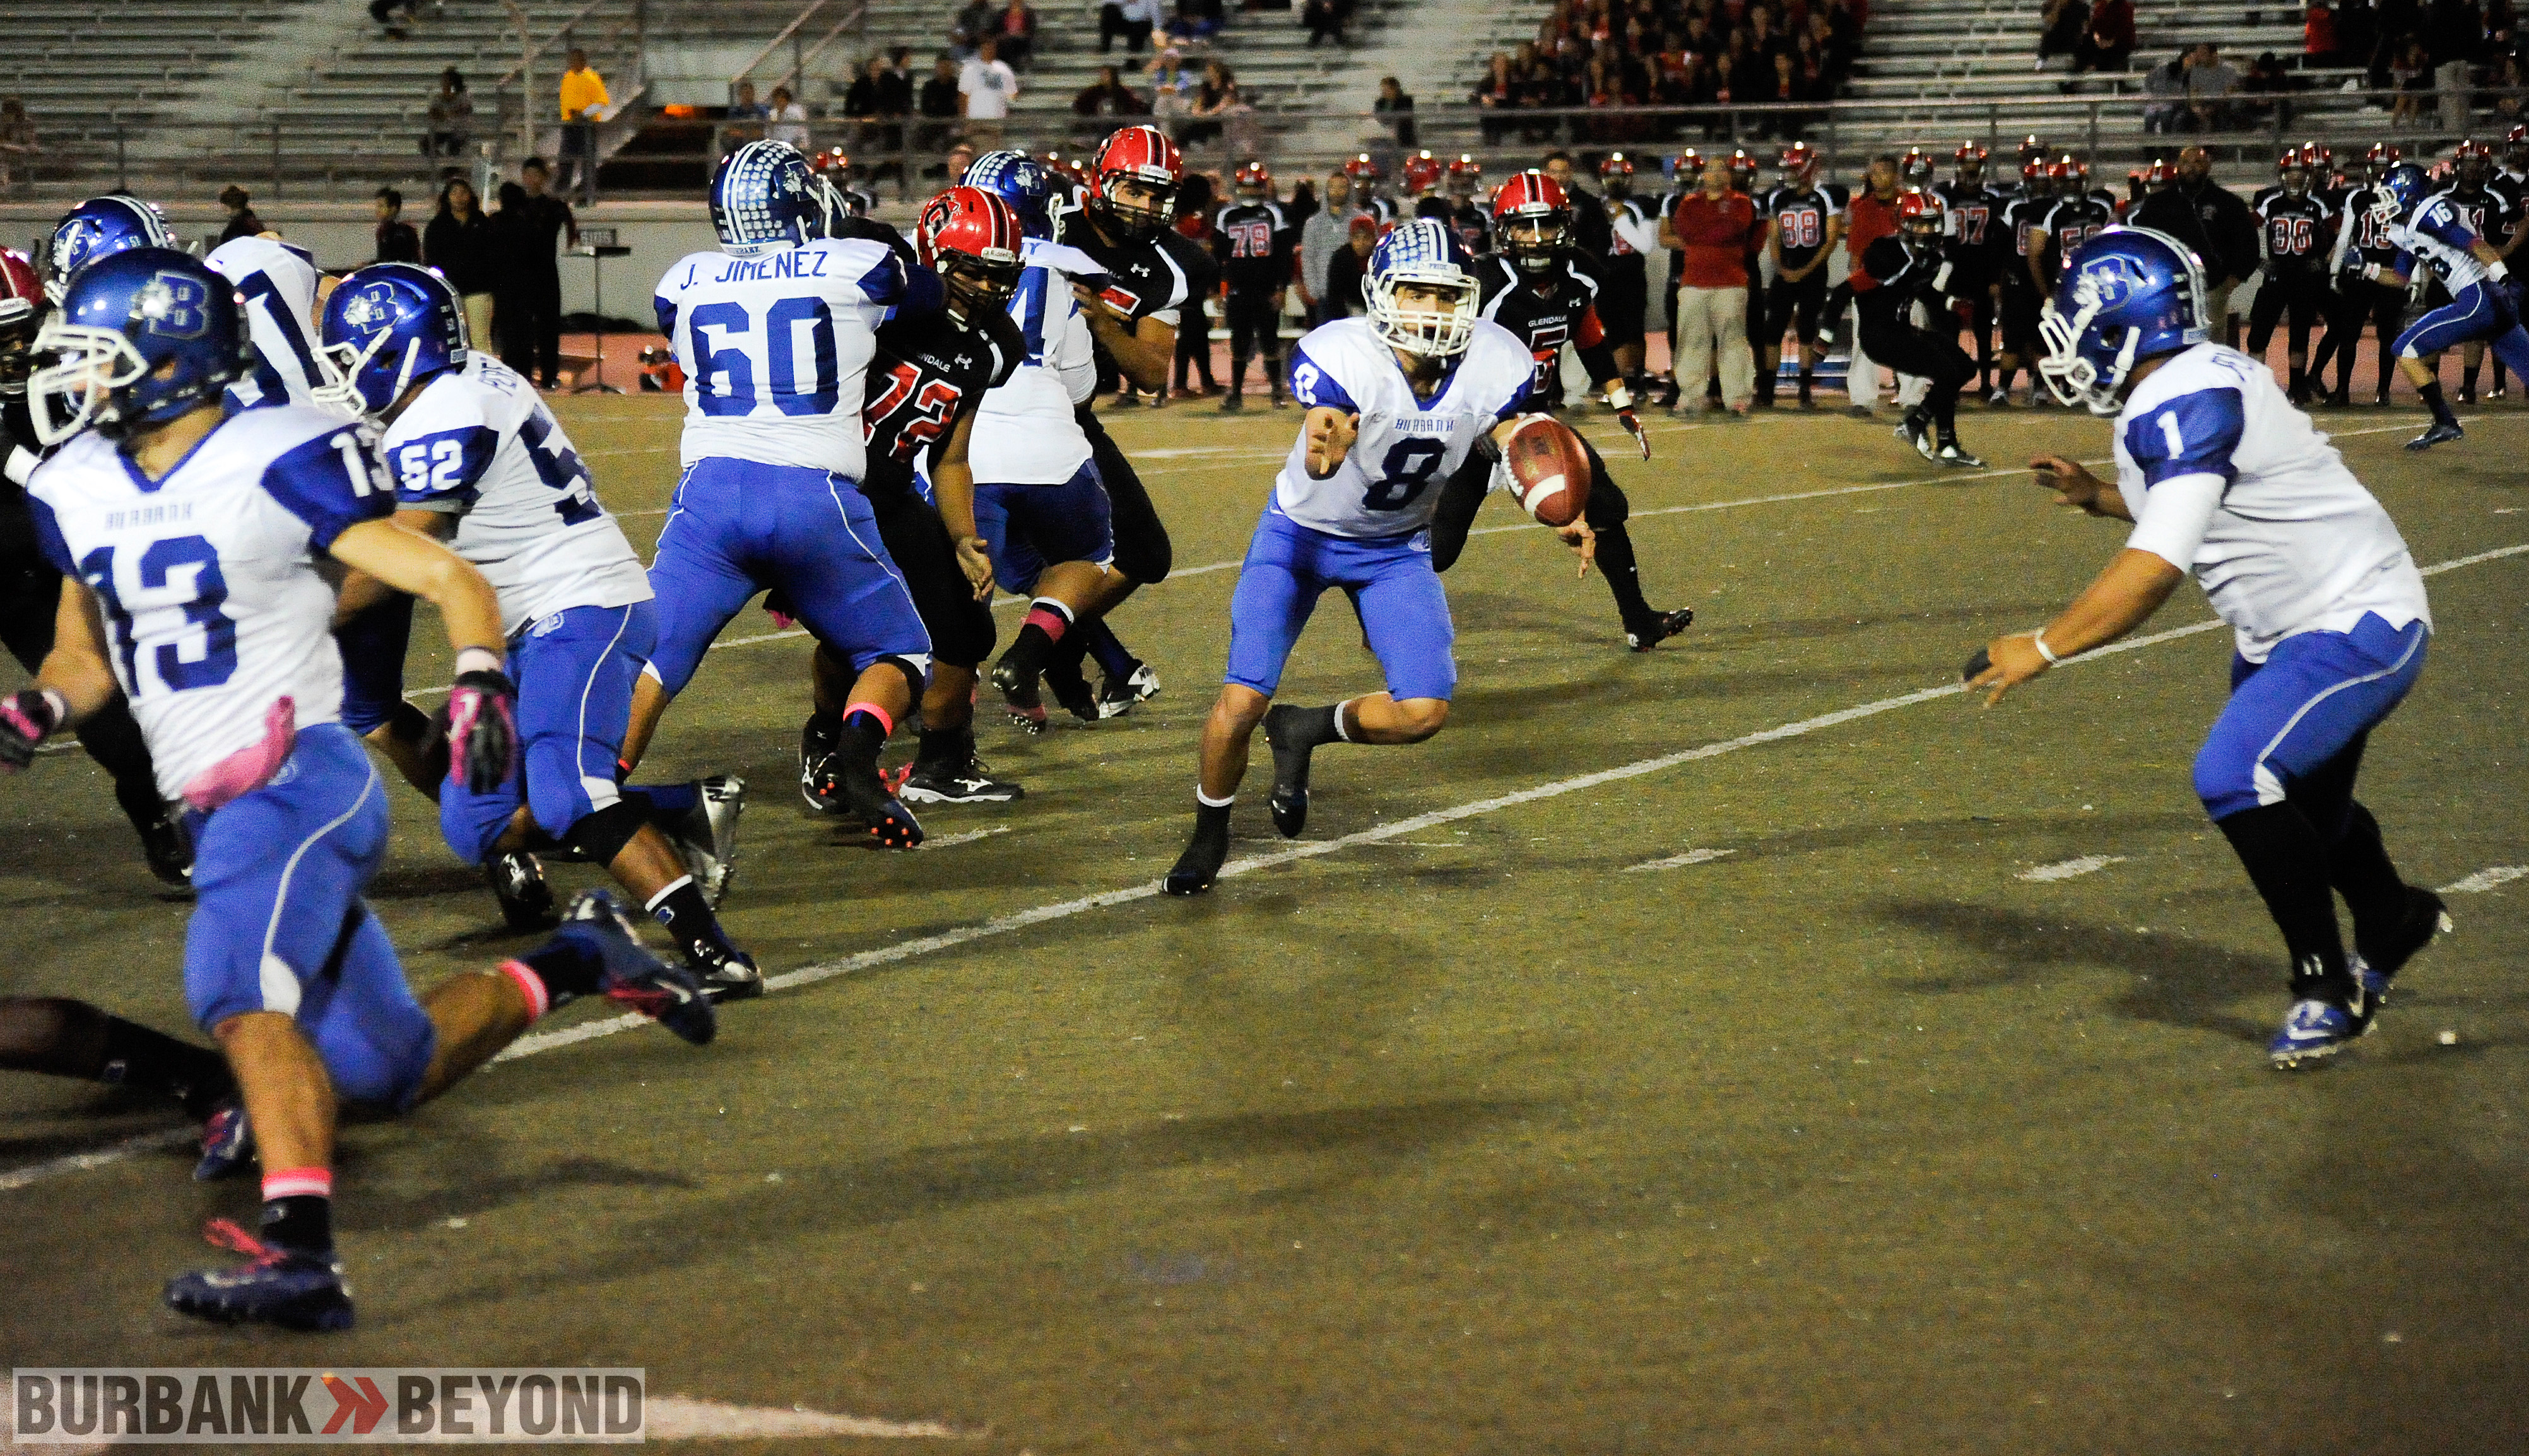 Joseph Pendleton takes the pitch en route to 113 yards on the evening (Photo by Craig Sherwood)